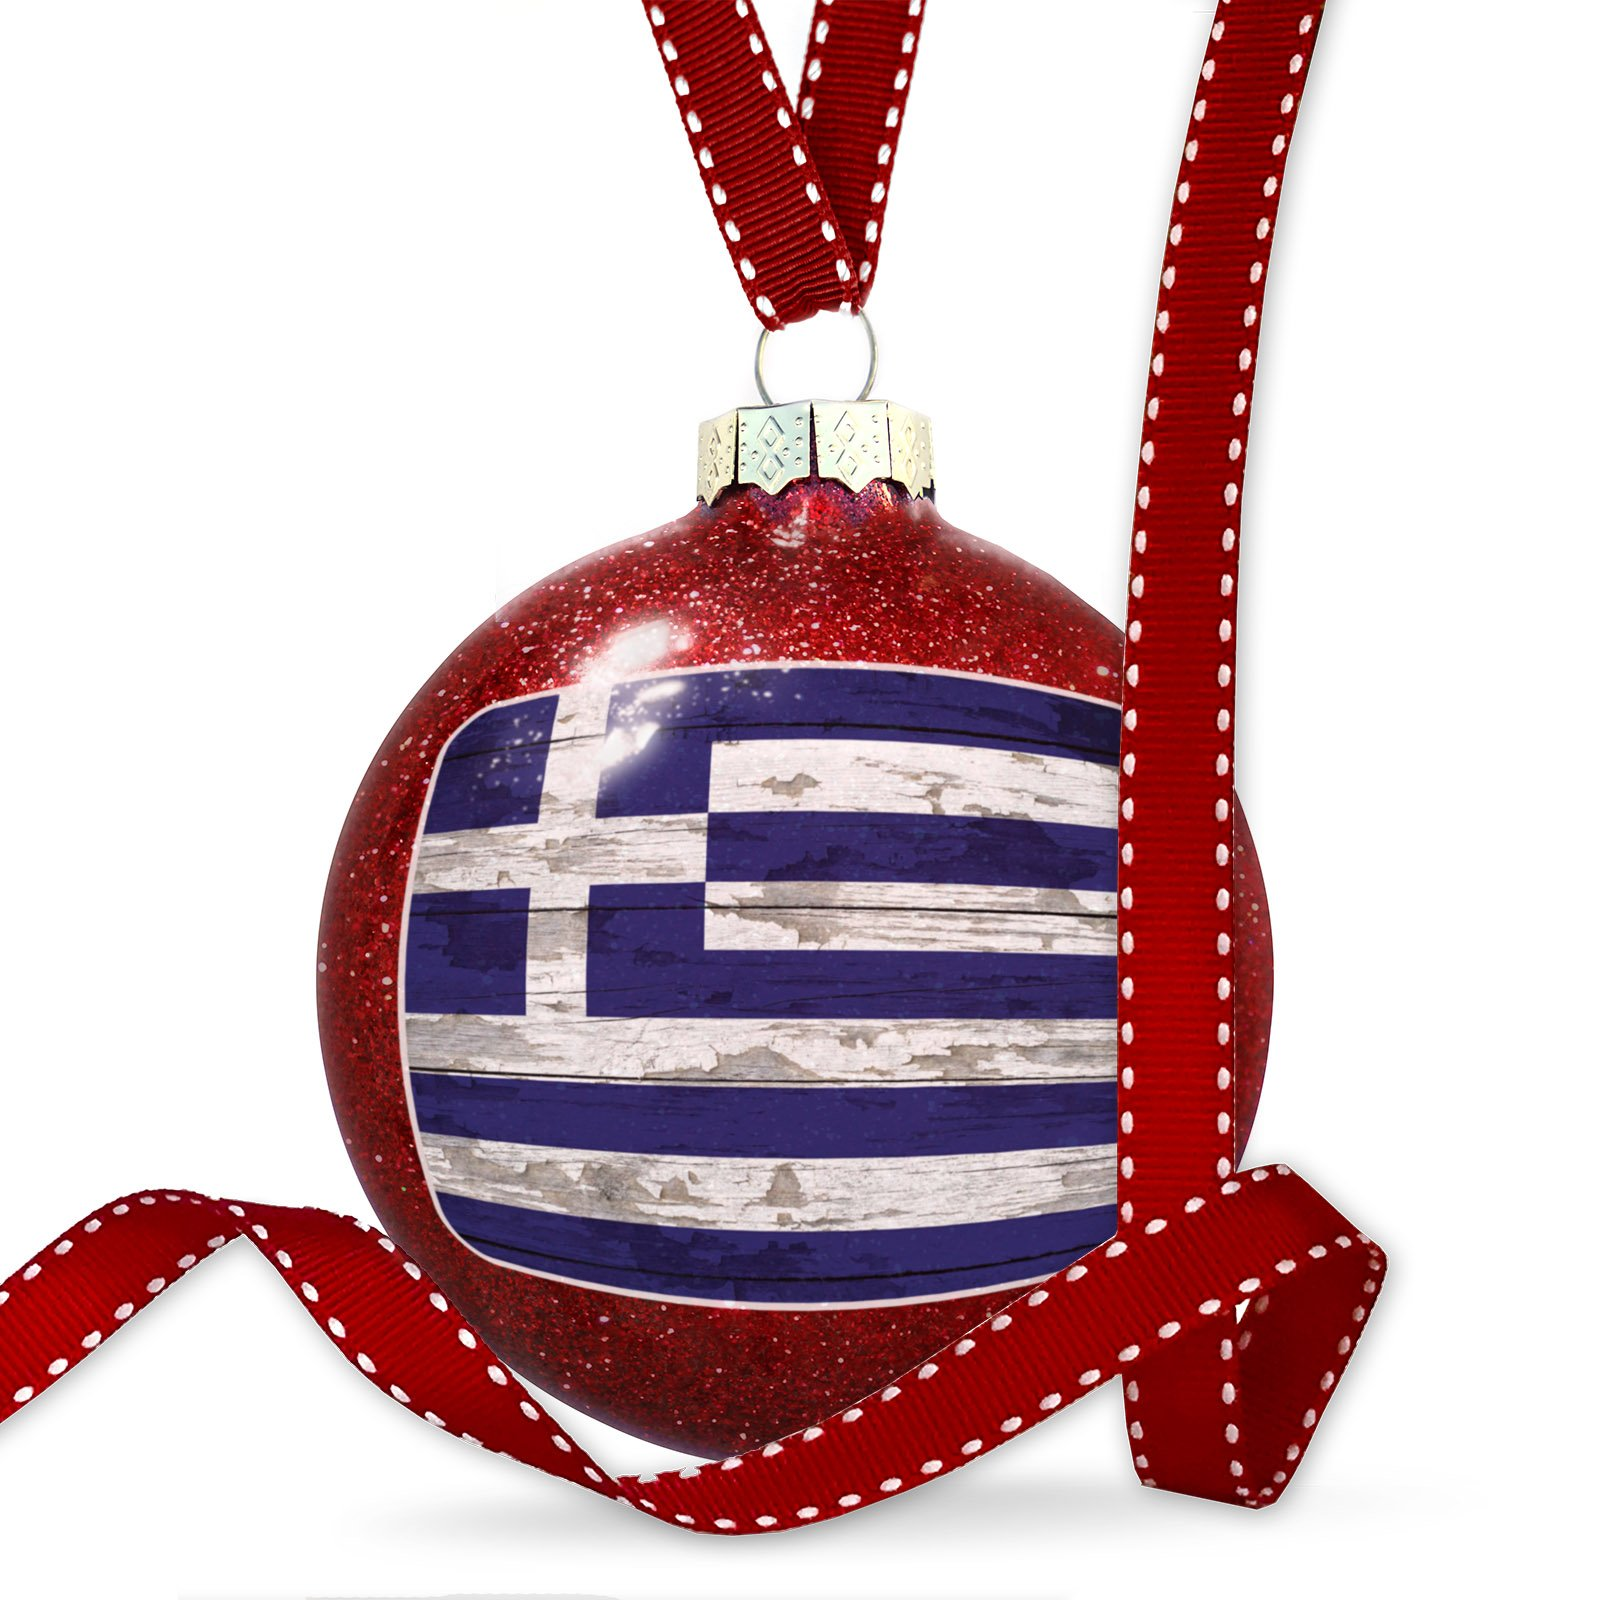 Christmas Decoration Flag on Wood Greece Ornament by NEONBLOND (Image #1)